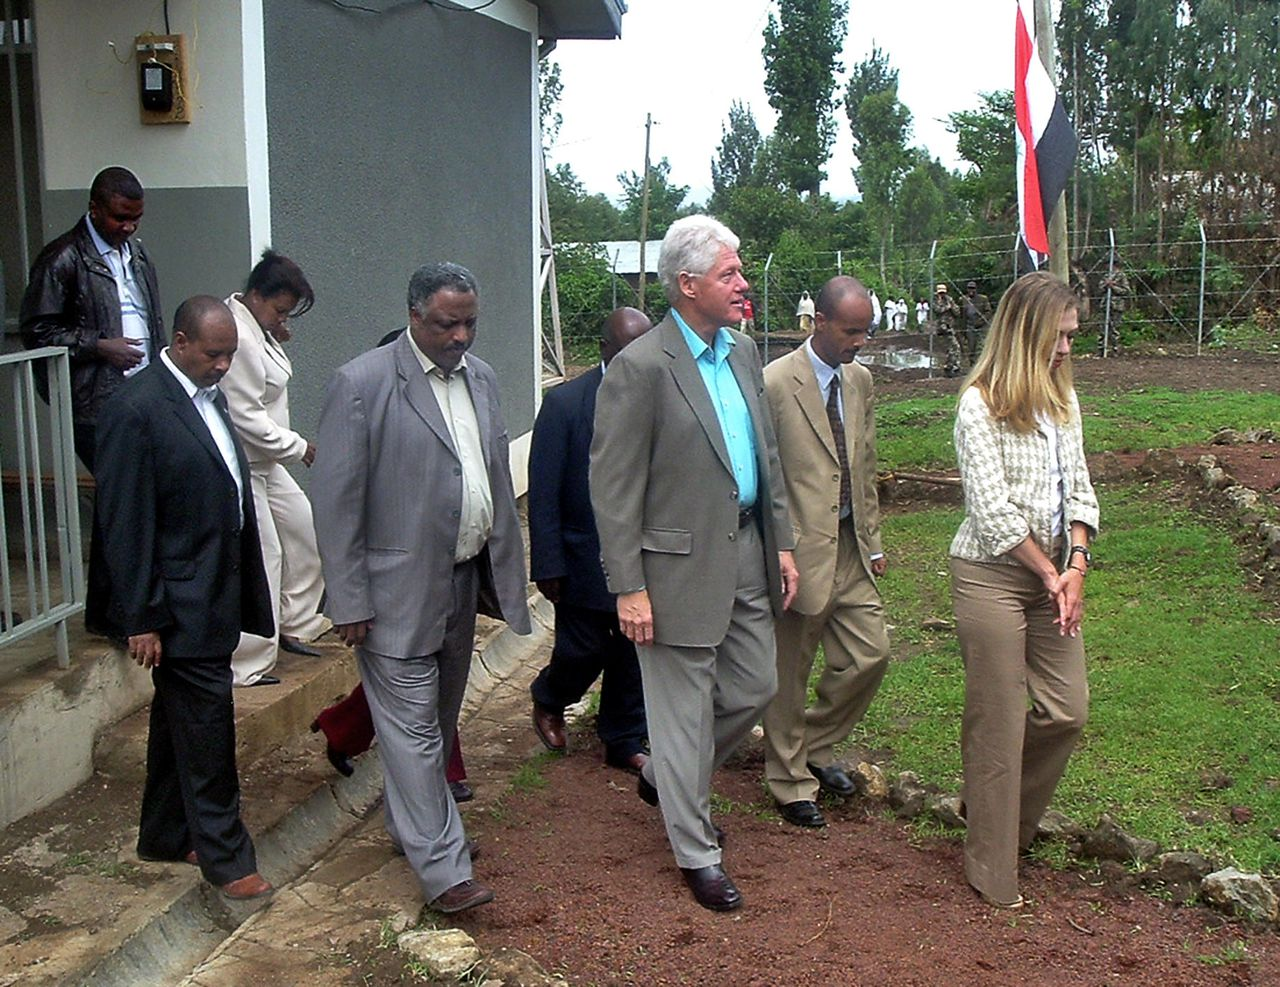 Bill Clinton in Afrika. Former Us President Bill Clinton (3rdR) walks during the visit of a clinic donated by the Clinton foundation at Godina Jitu, near Addis Ababa accompanied by his daughter Chelsea (R) and other health officials. Clinton, on a four nation Africa tour pledged some five million dollars more over the next three years to the Horn of Africa nation to help prevent the spread of diseases like AIDS and malaria that kill some 370 Ethiopians daily. AFP PHOTO/ AARON MAASHO